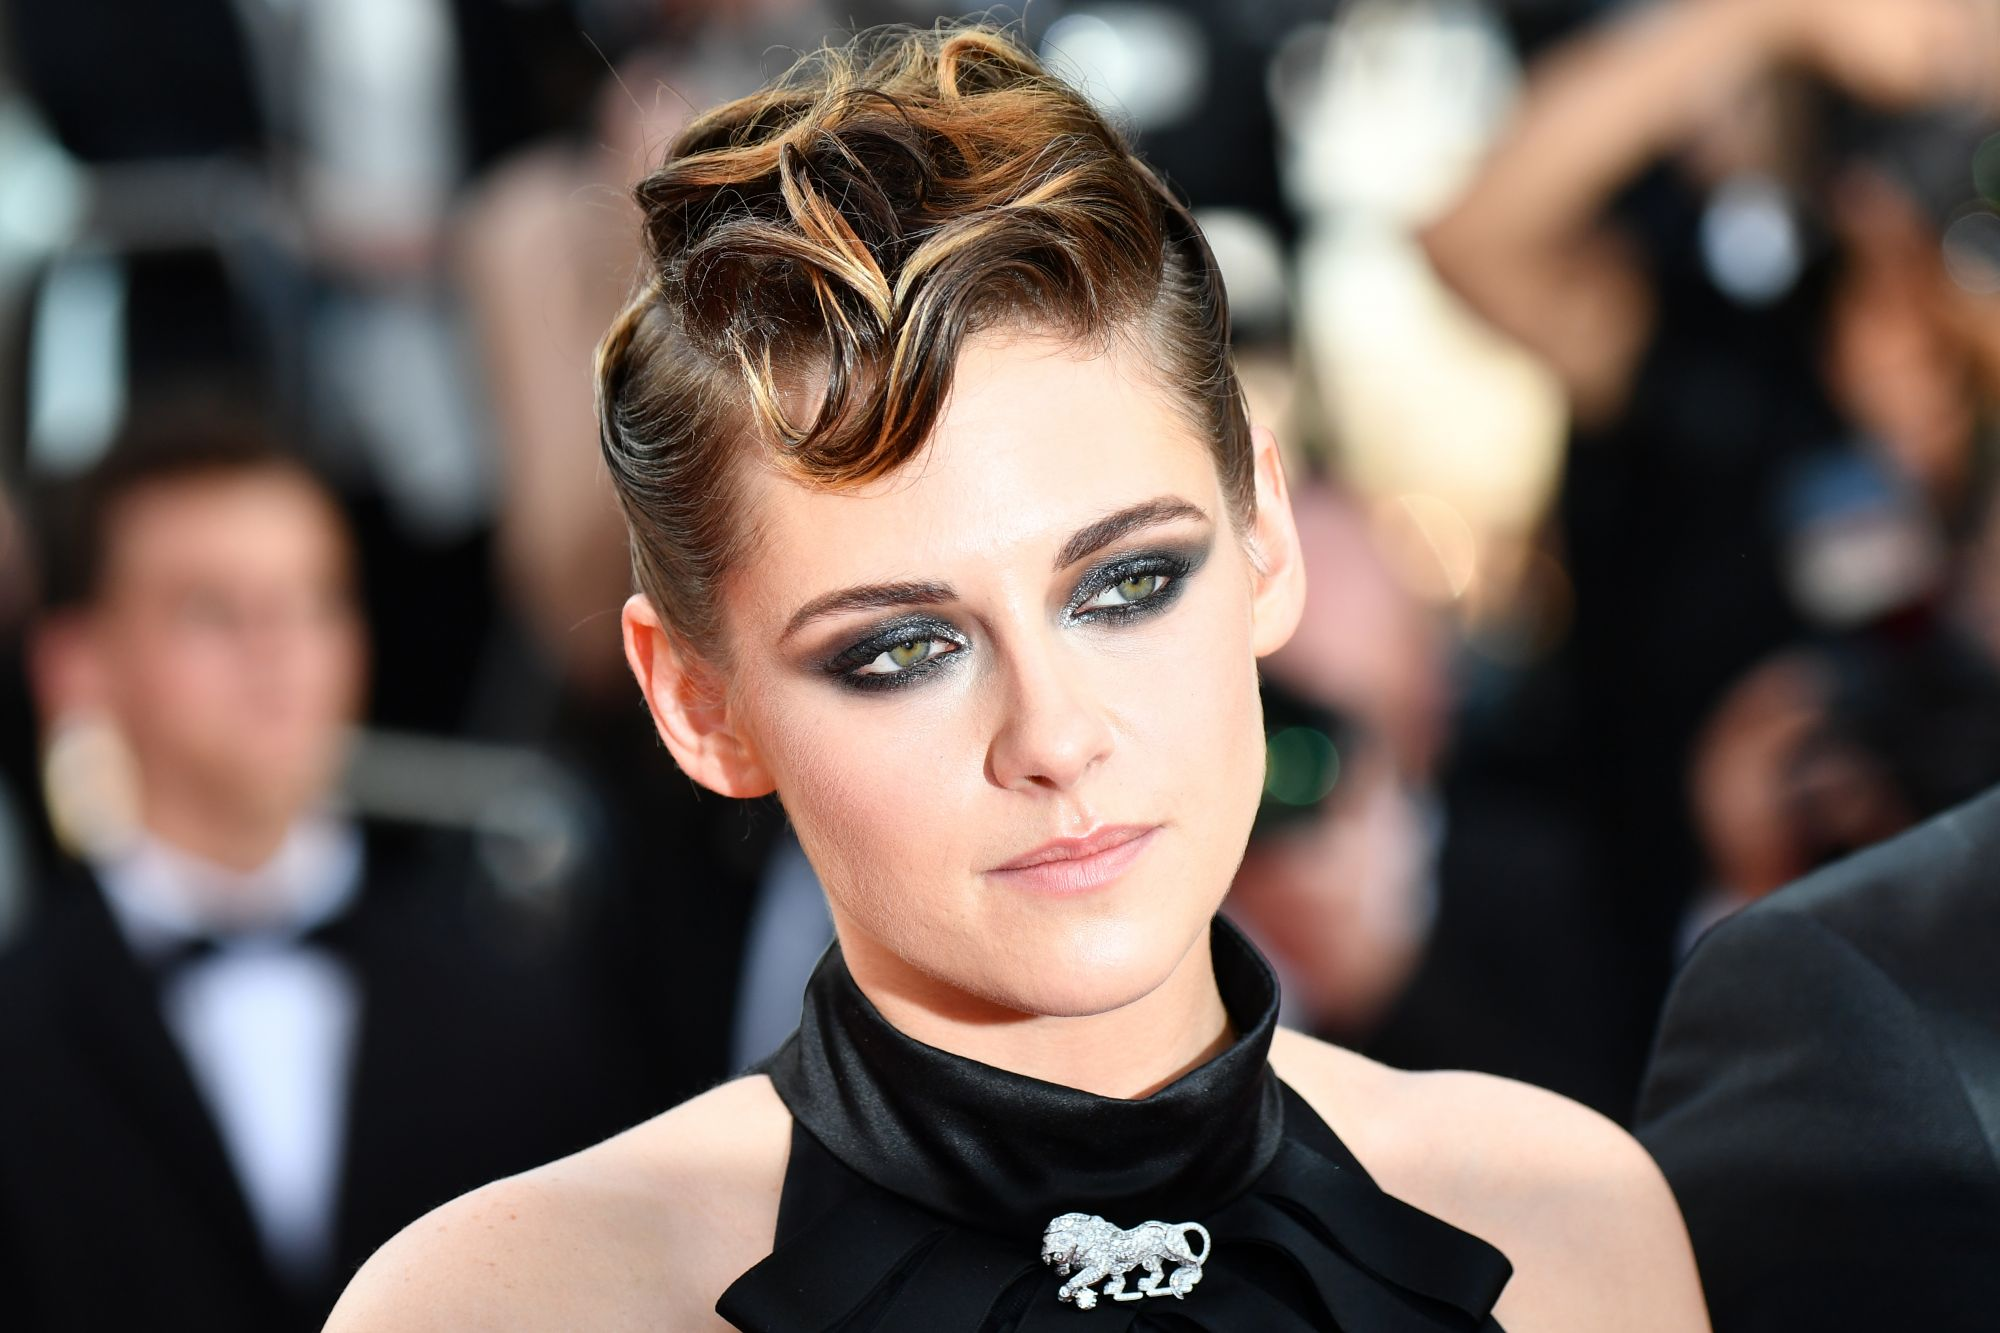 Kristen Stewart entrusted Chanel with her makeup, outfit and jewelry. She wore a brooch in the shape of a lion, Gabrielle Chanel's favorite animal.